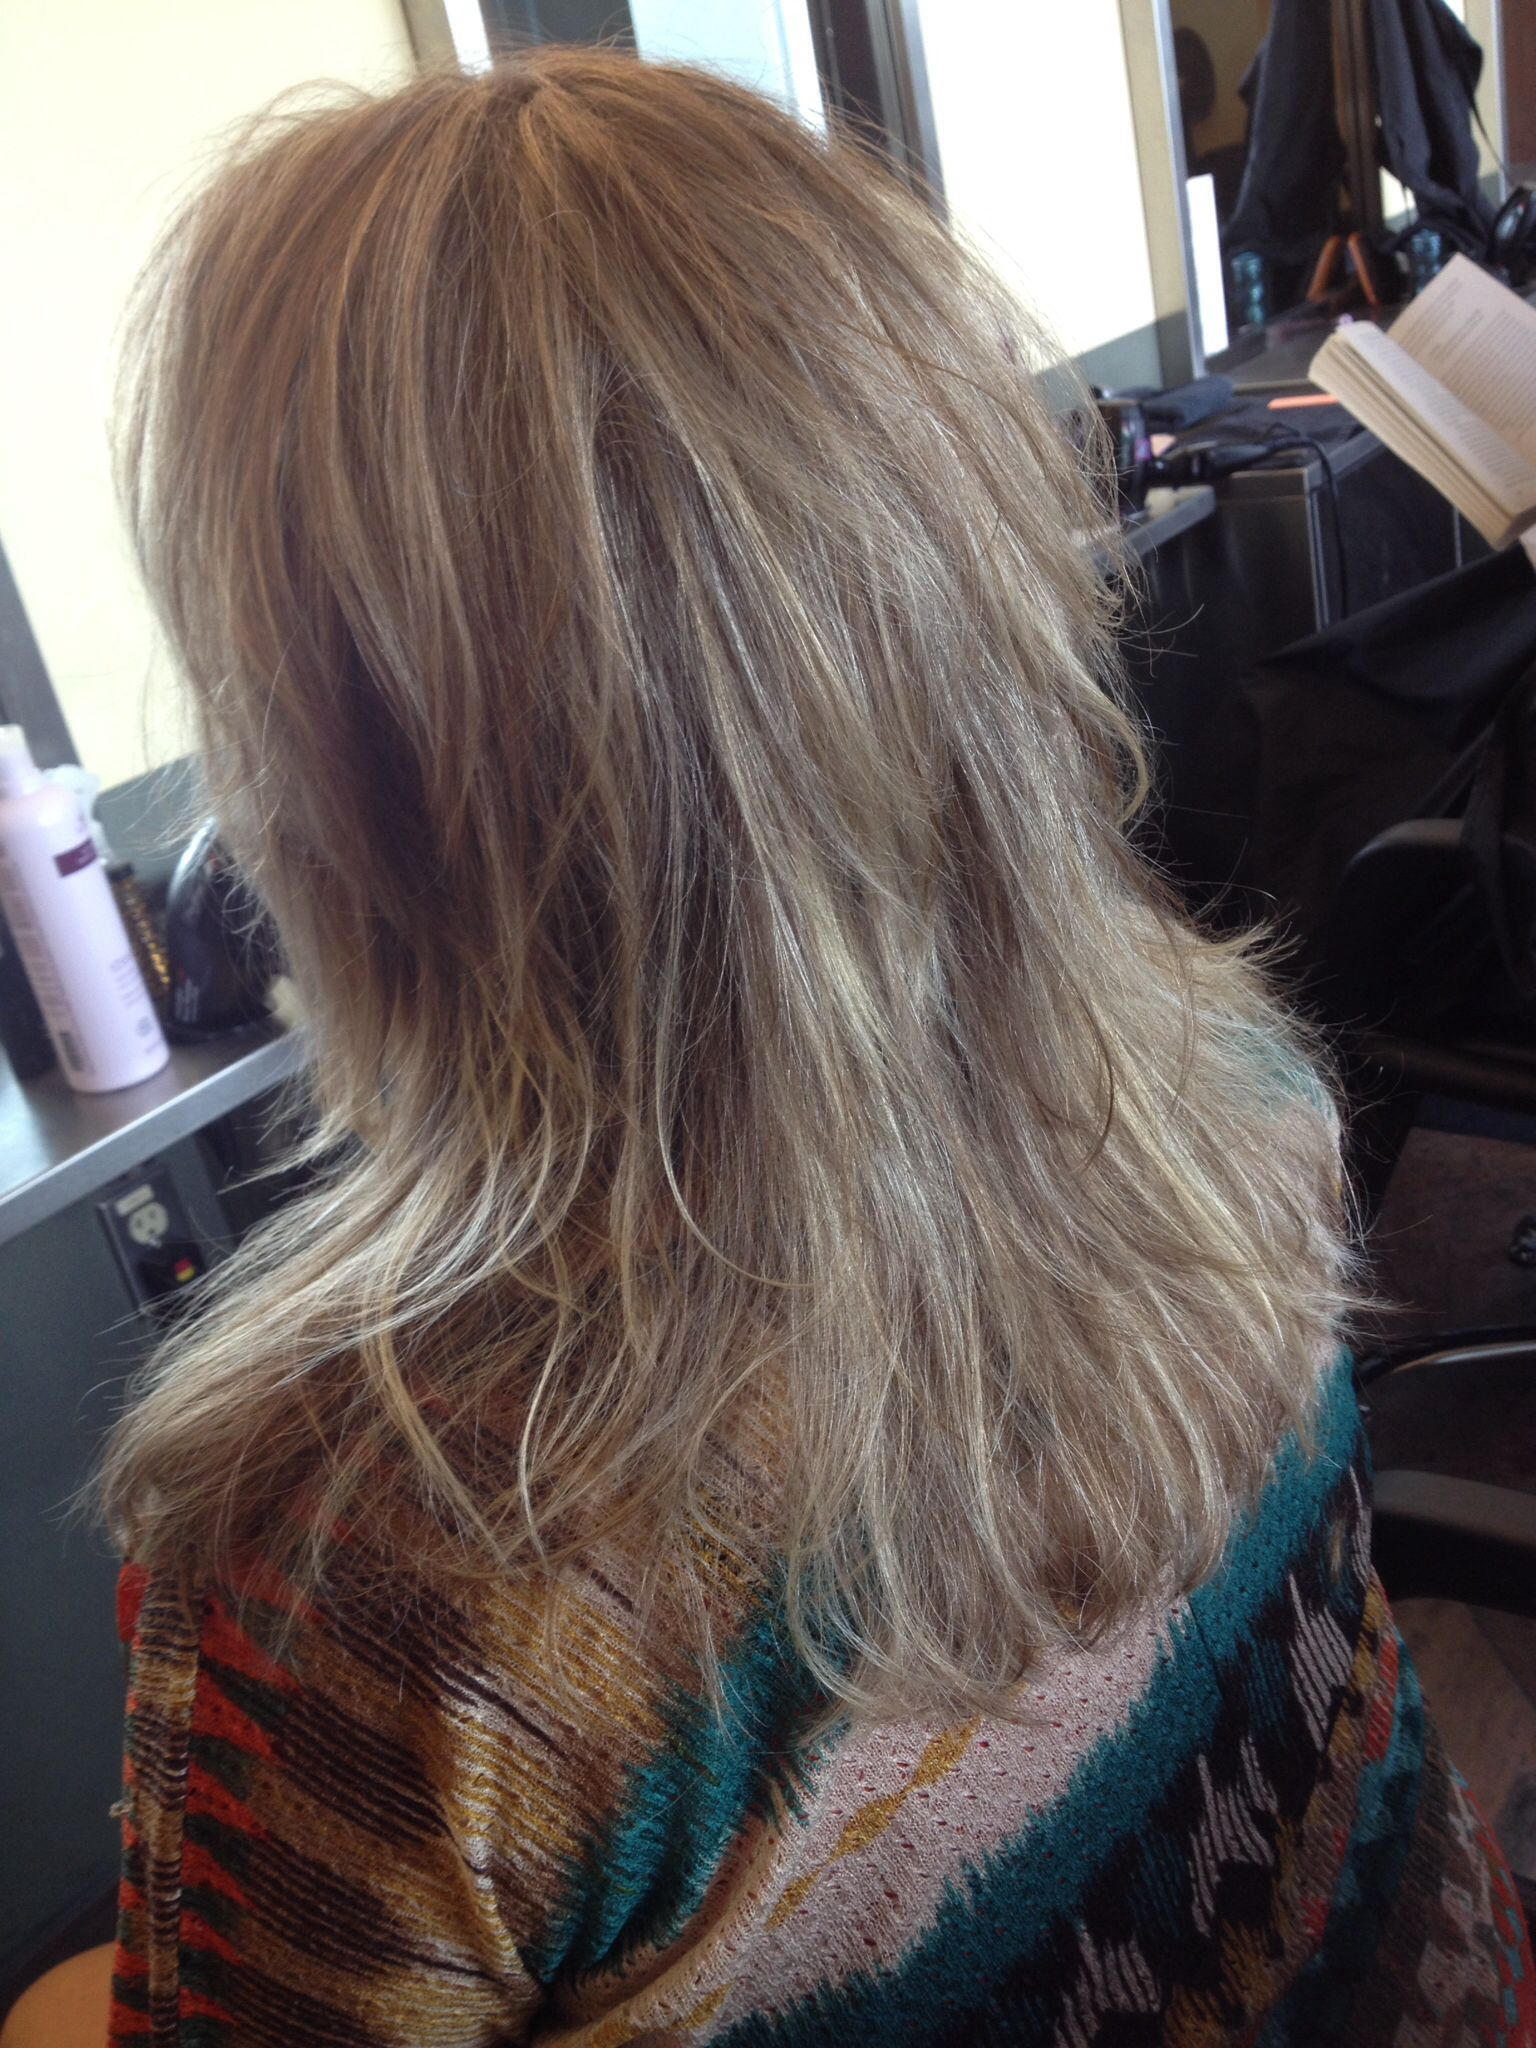 Full head highlight pivoting concave layers with far wards flow